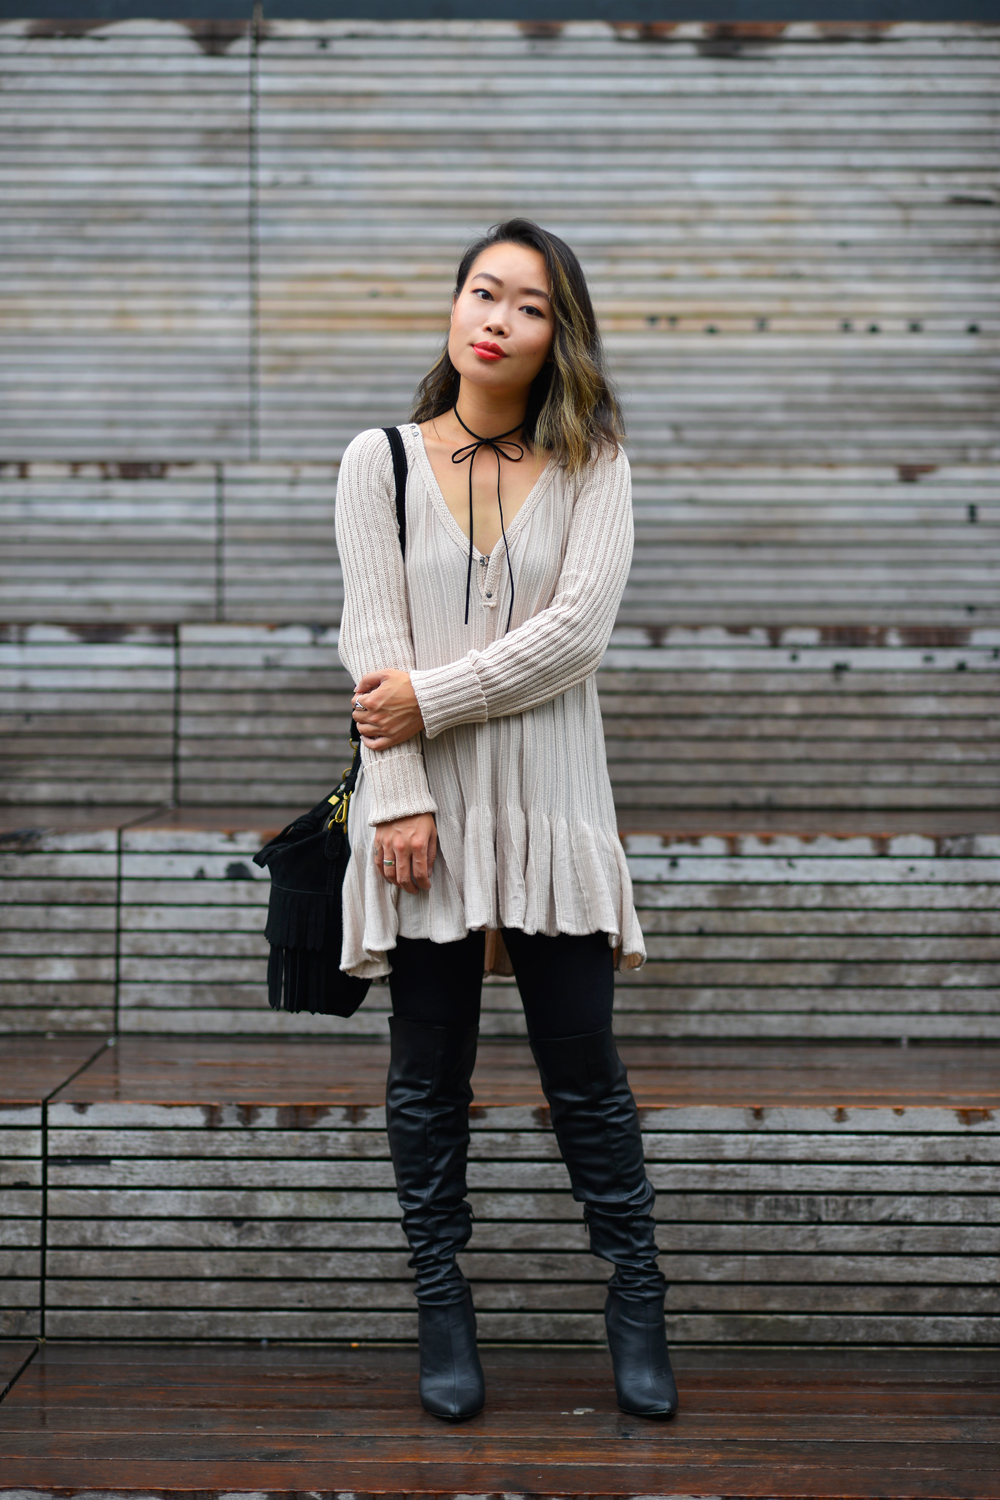 04nyc-newyork-highline-freepeople-madewell-style-fashion-travel